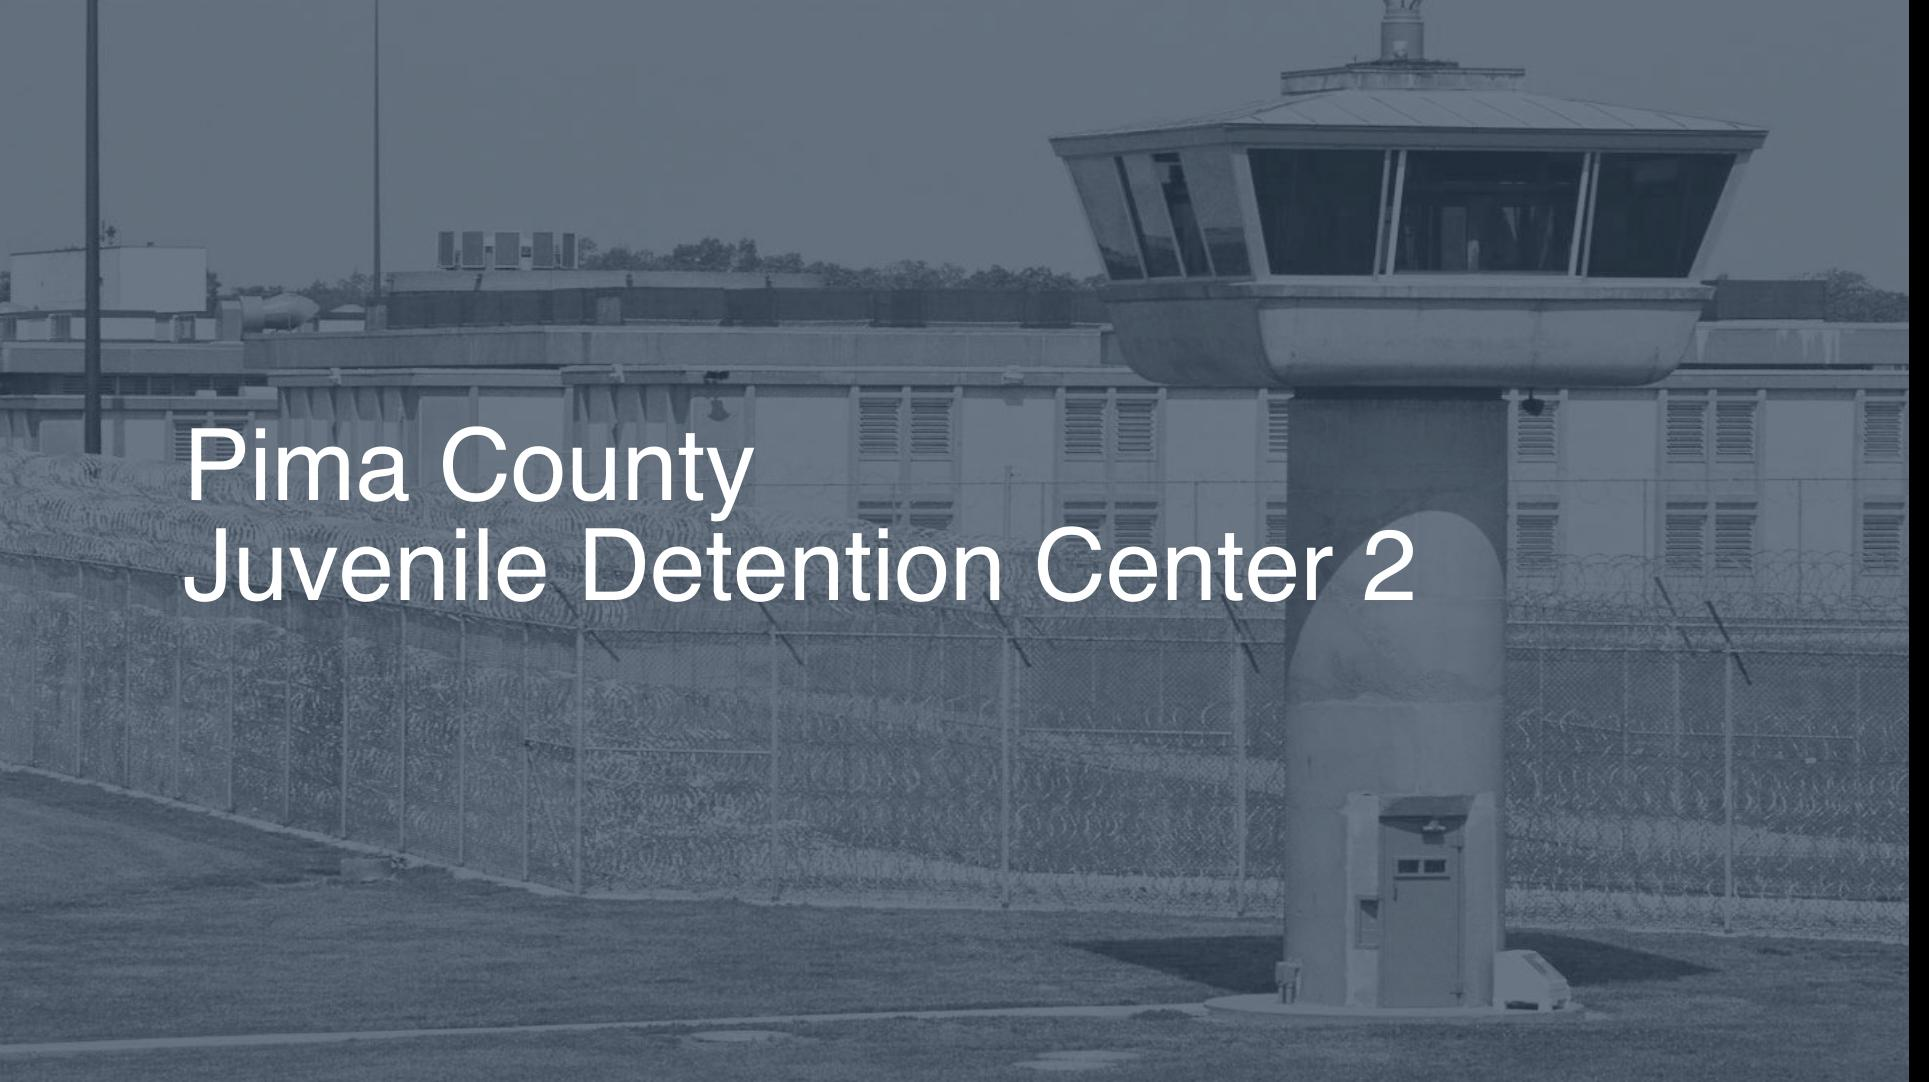 Pima County Juvenile Detention Center | Pigeonly - Inmate